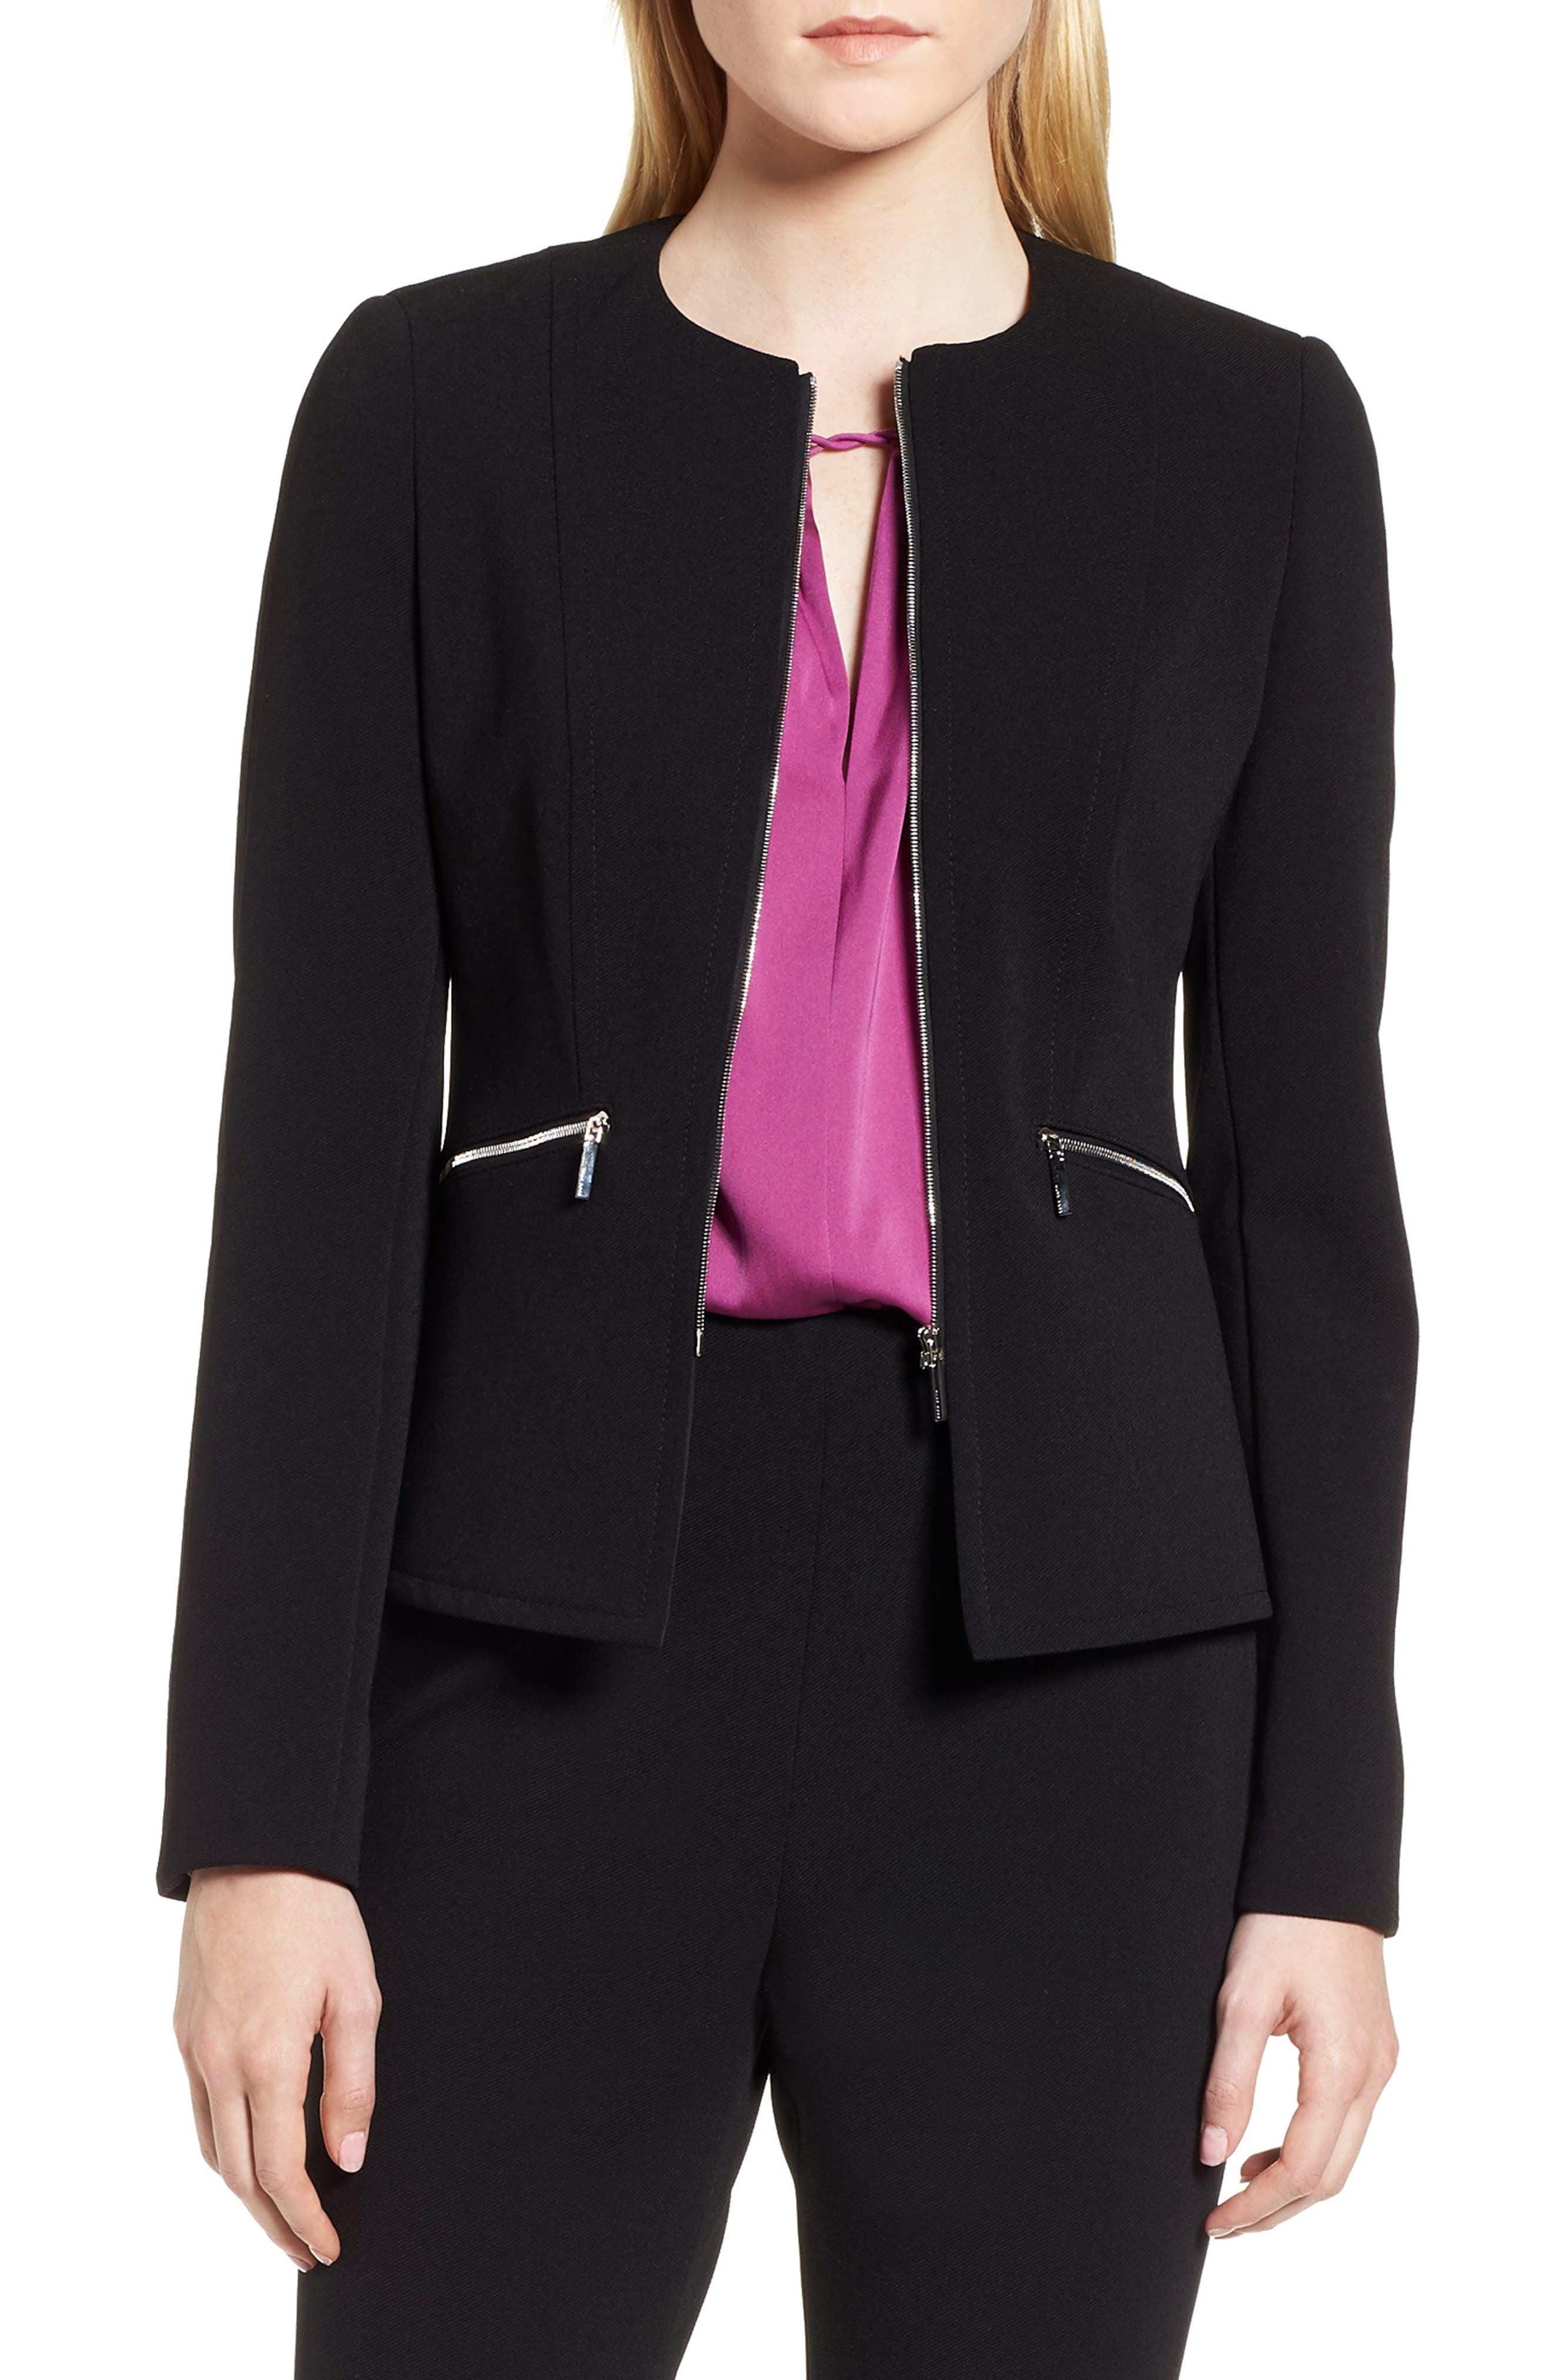 Jazulara Twill Jersey Suit Jacket,                             Main thumbnail 1, color,                             Black